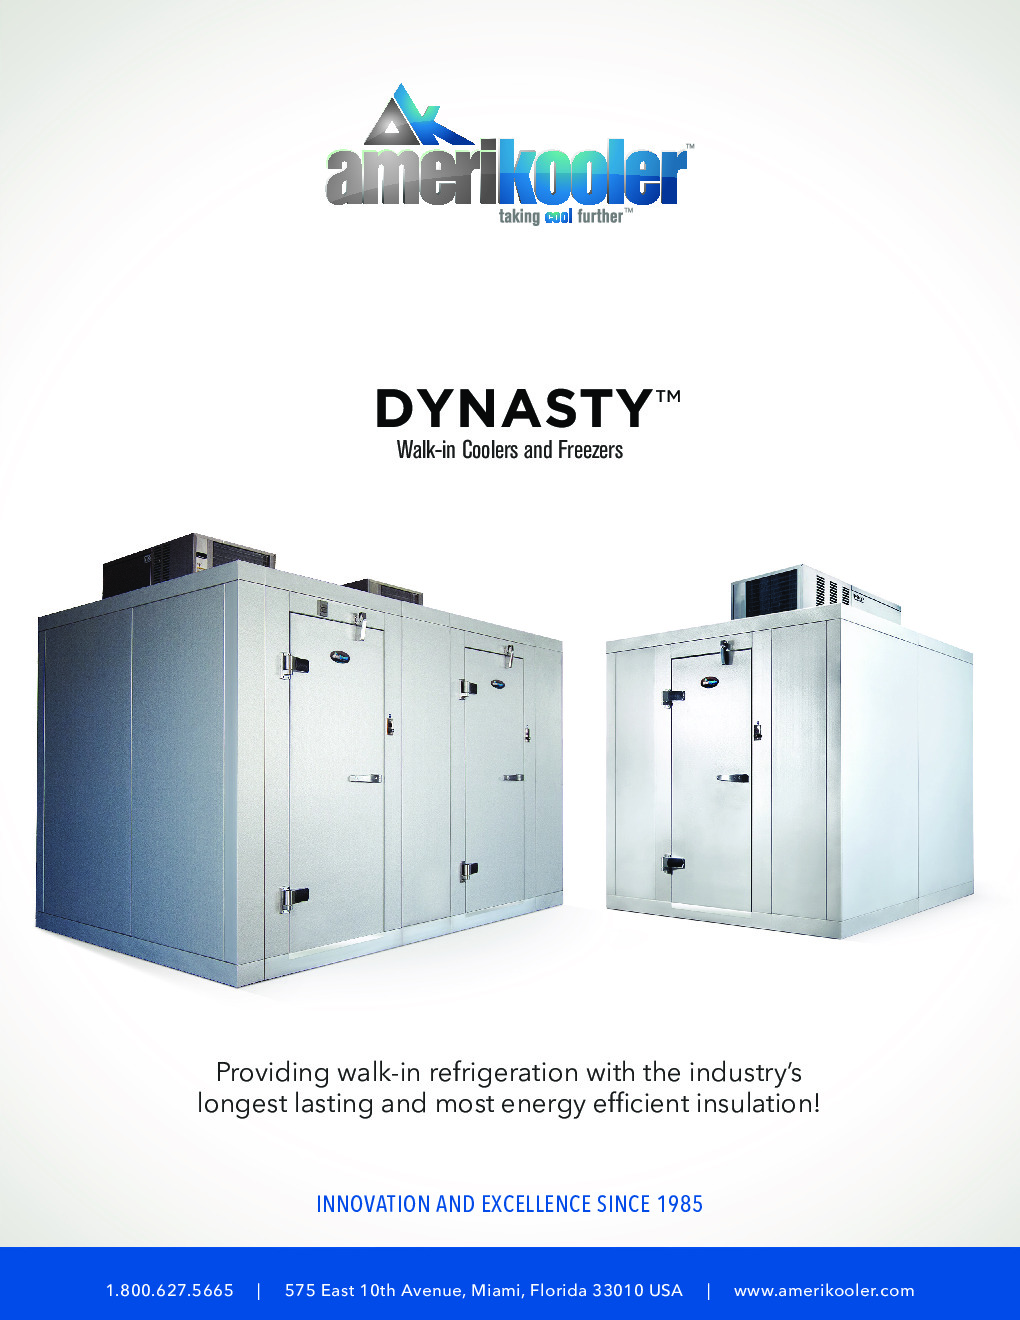 AmeriKooler DW091977N-8/11-SC 9' X 19' Walk-In Cooler, 11' L Cooler without Floor and 8' L Freezer, Self Contained